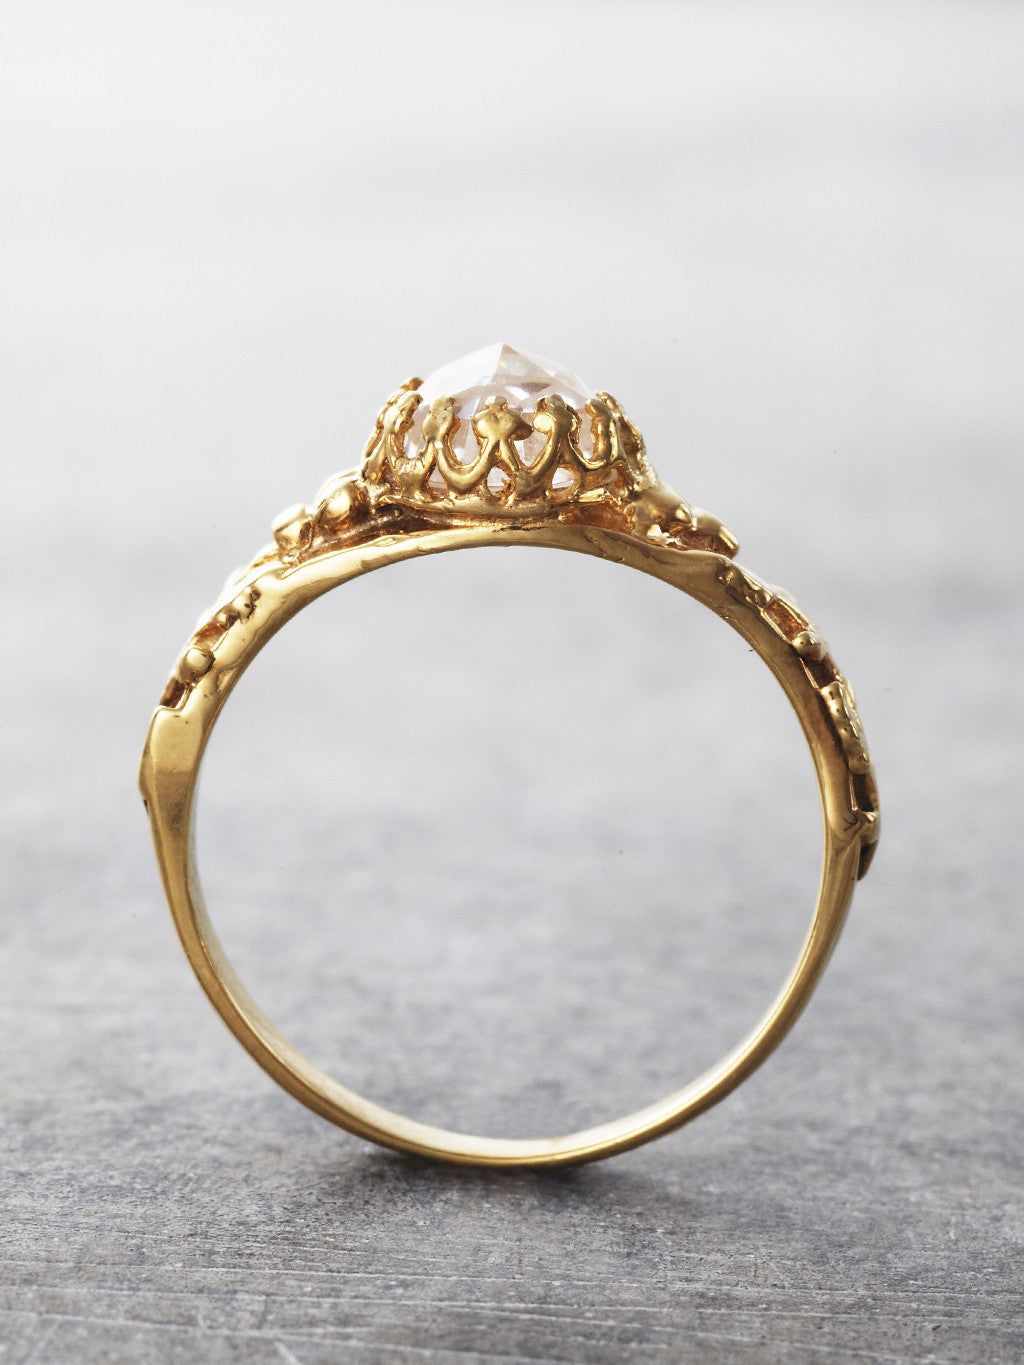 14K Gold Ice Castle Crown Ring - Moissanite